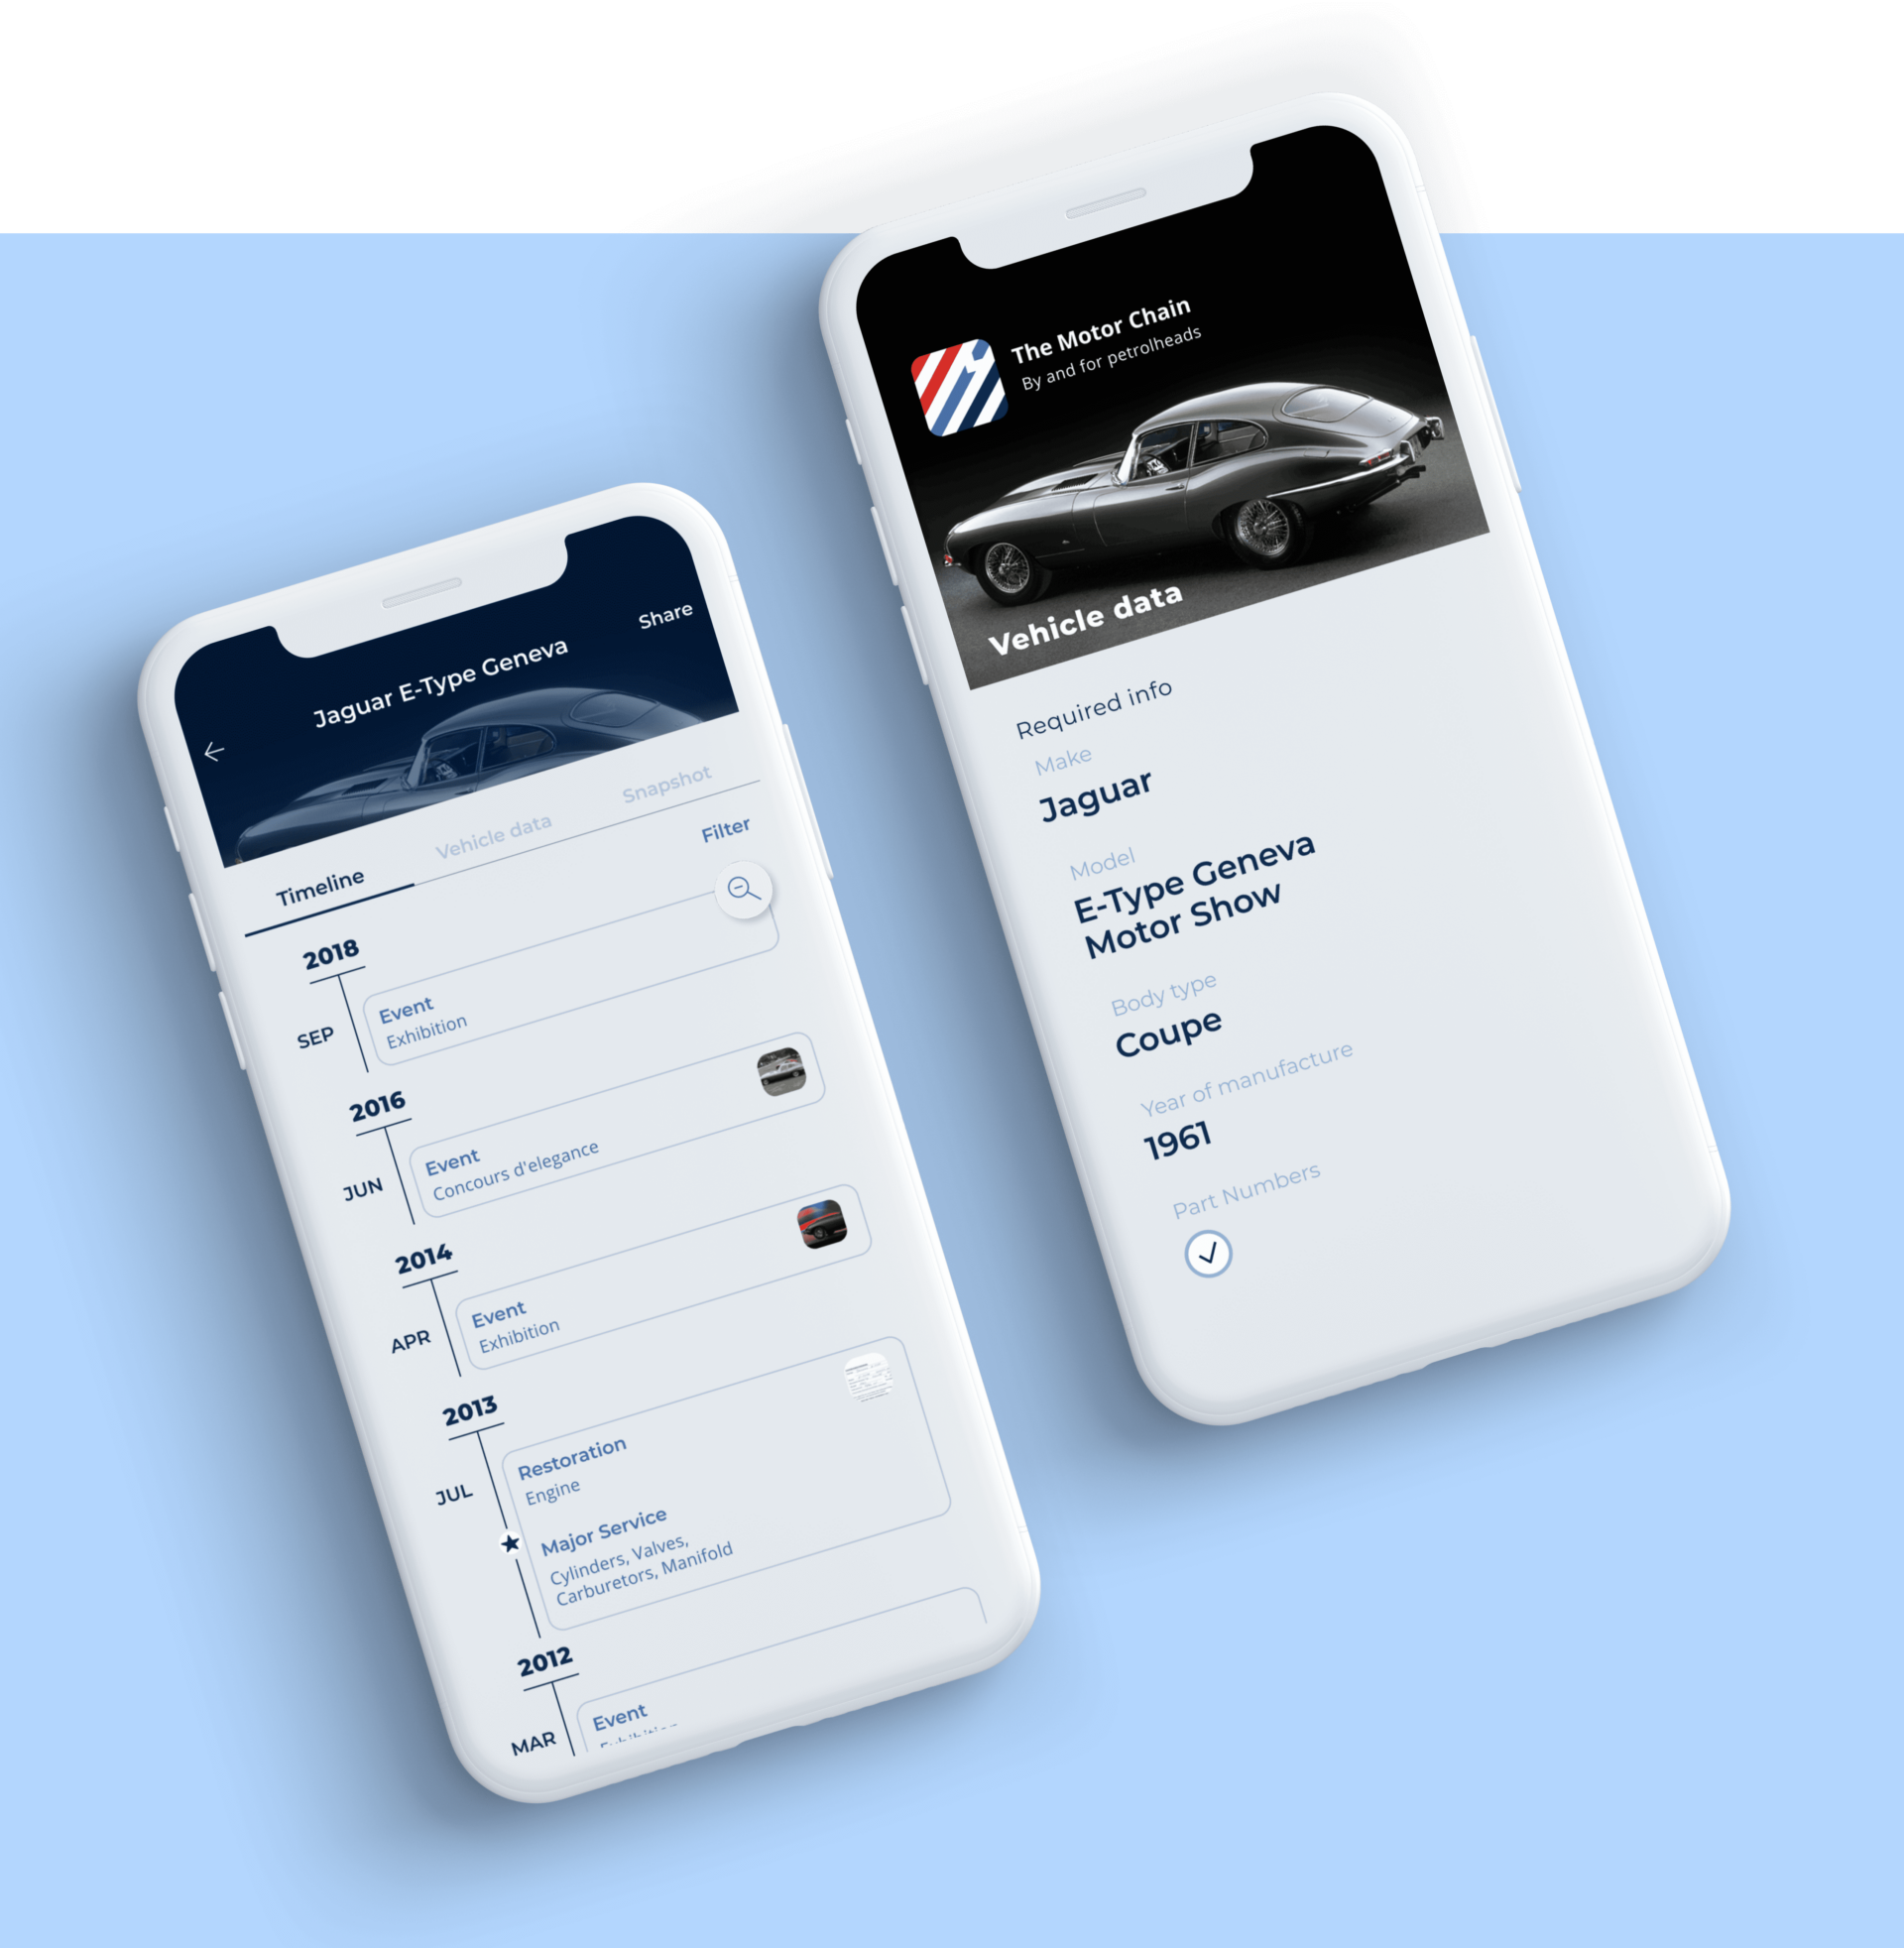 Our clients_Startup The motor chain Detailed view of a mobile application screens Vehicle's Timeline and main data